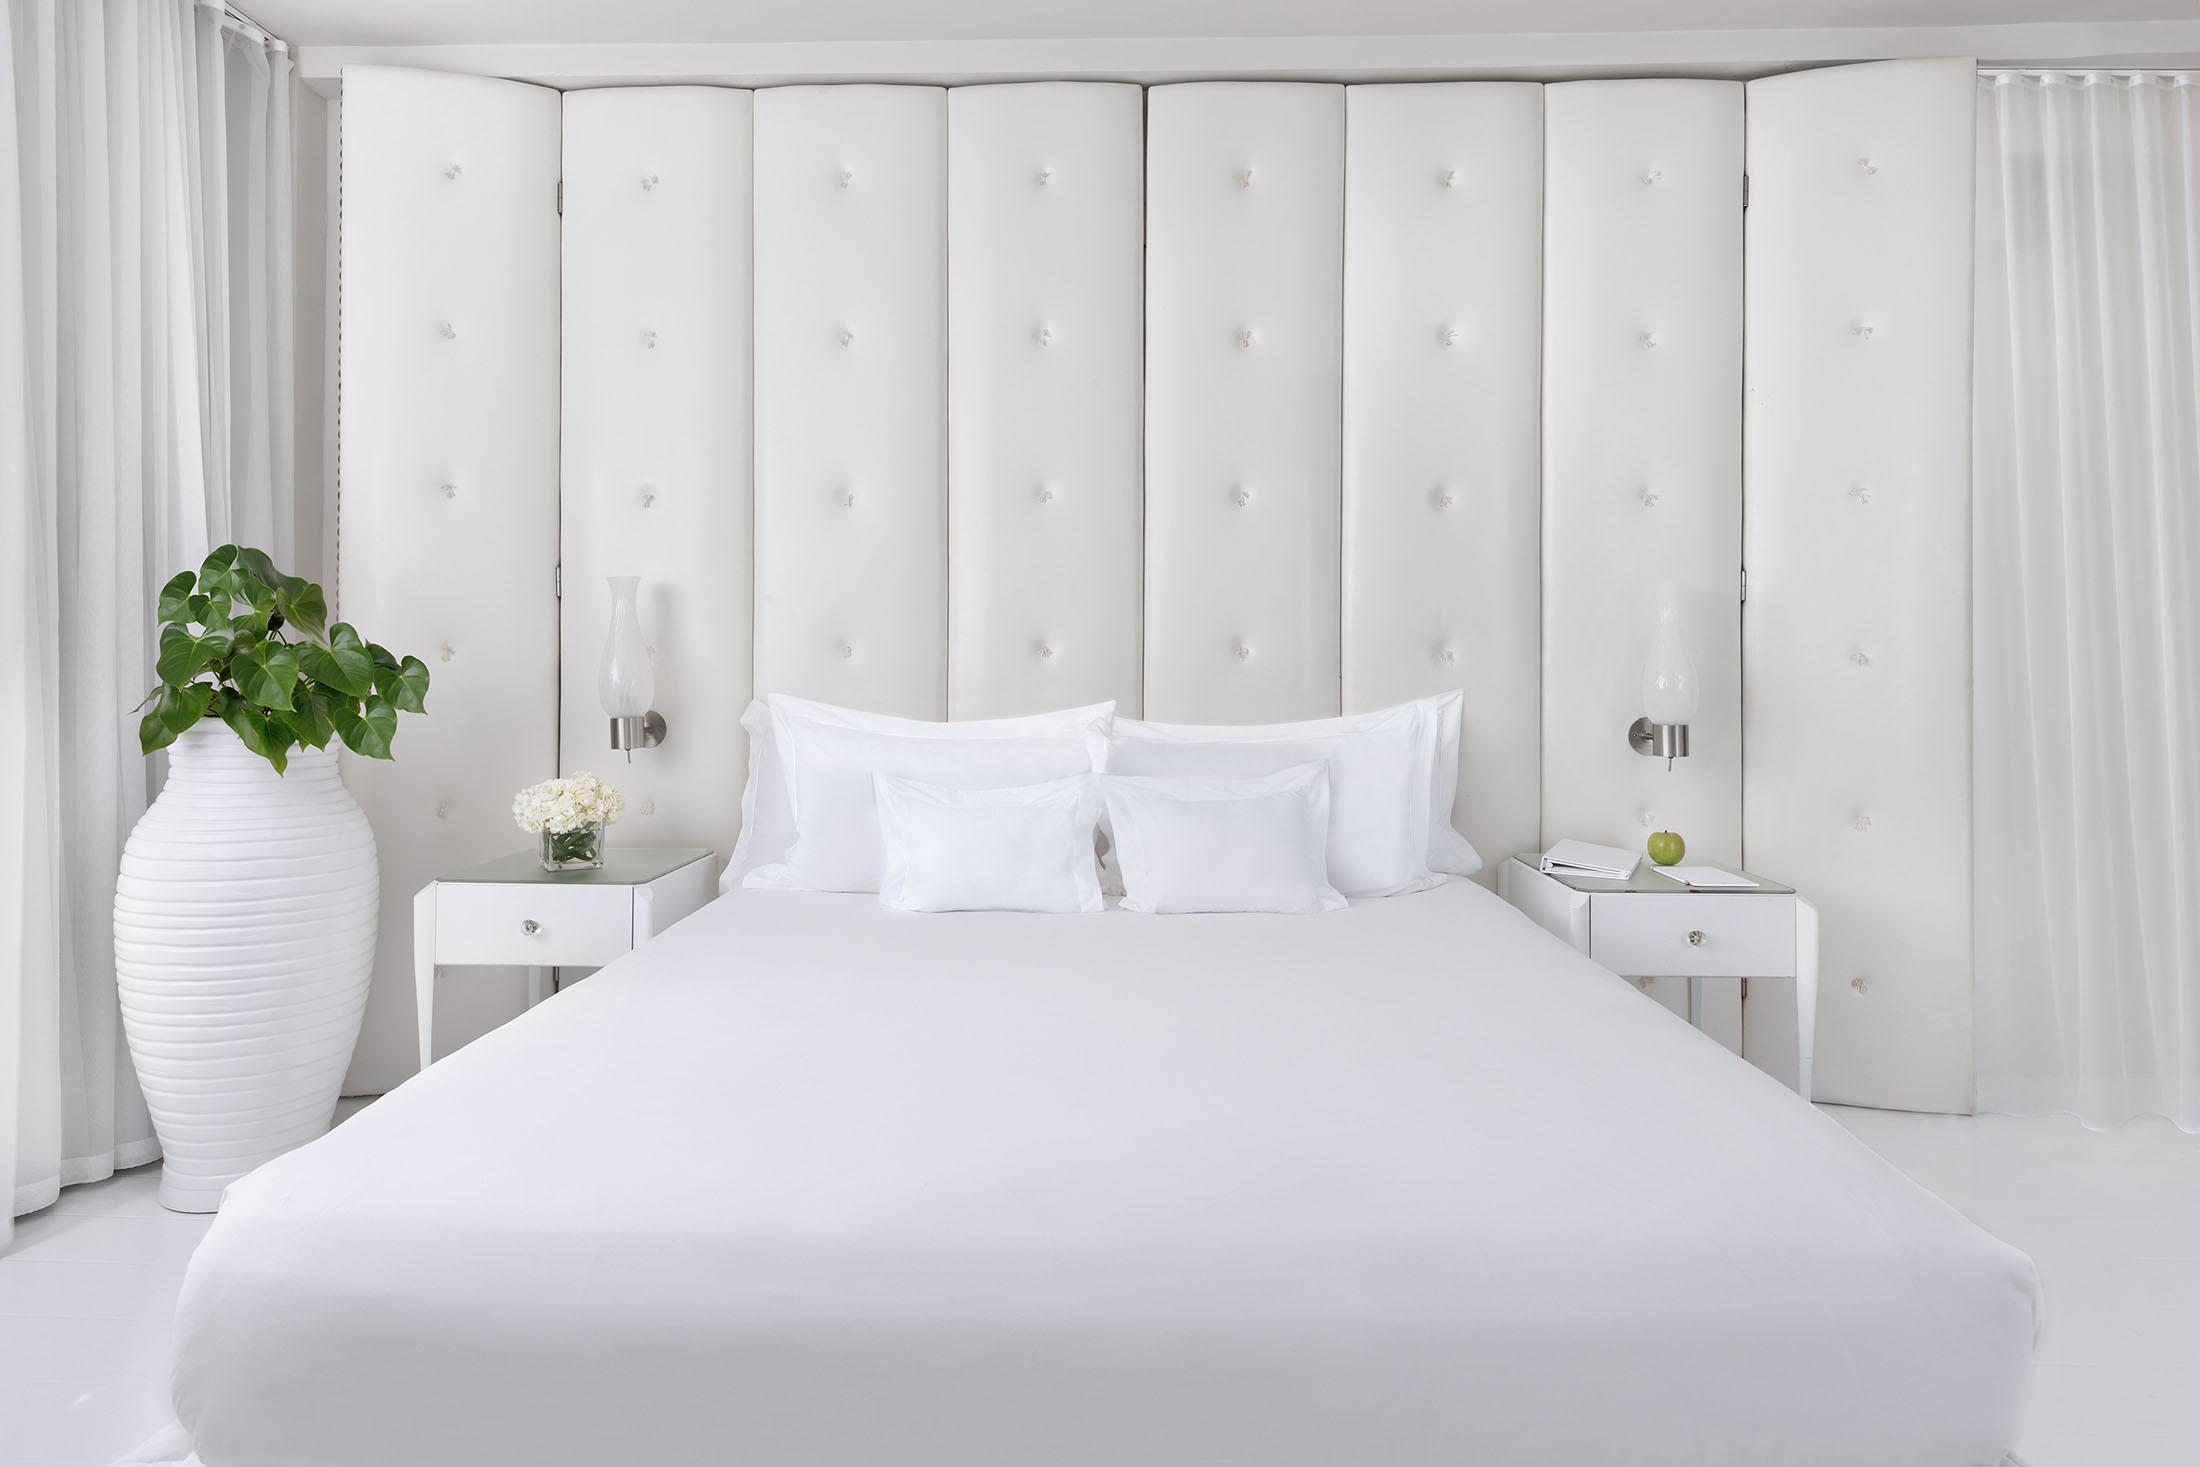 White bed in front of white panelled walls